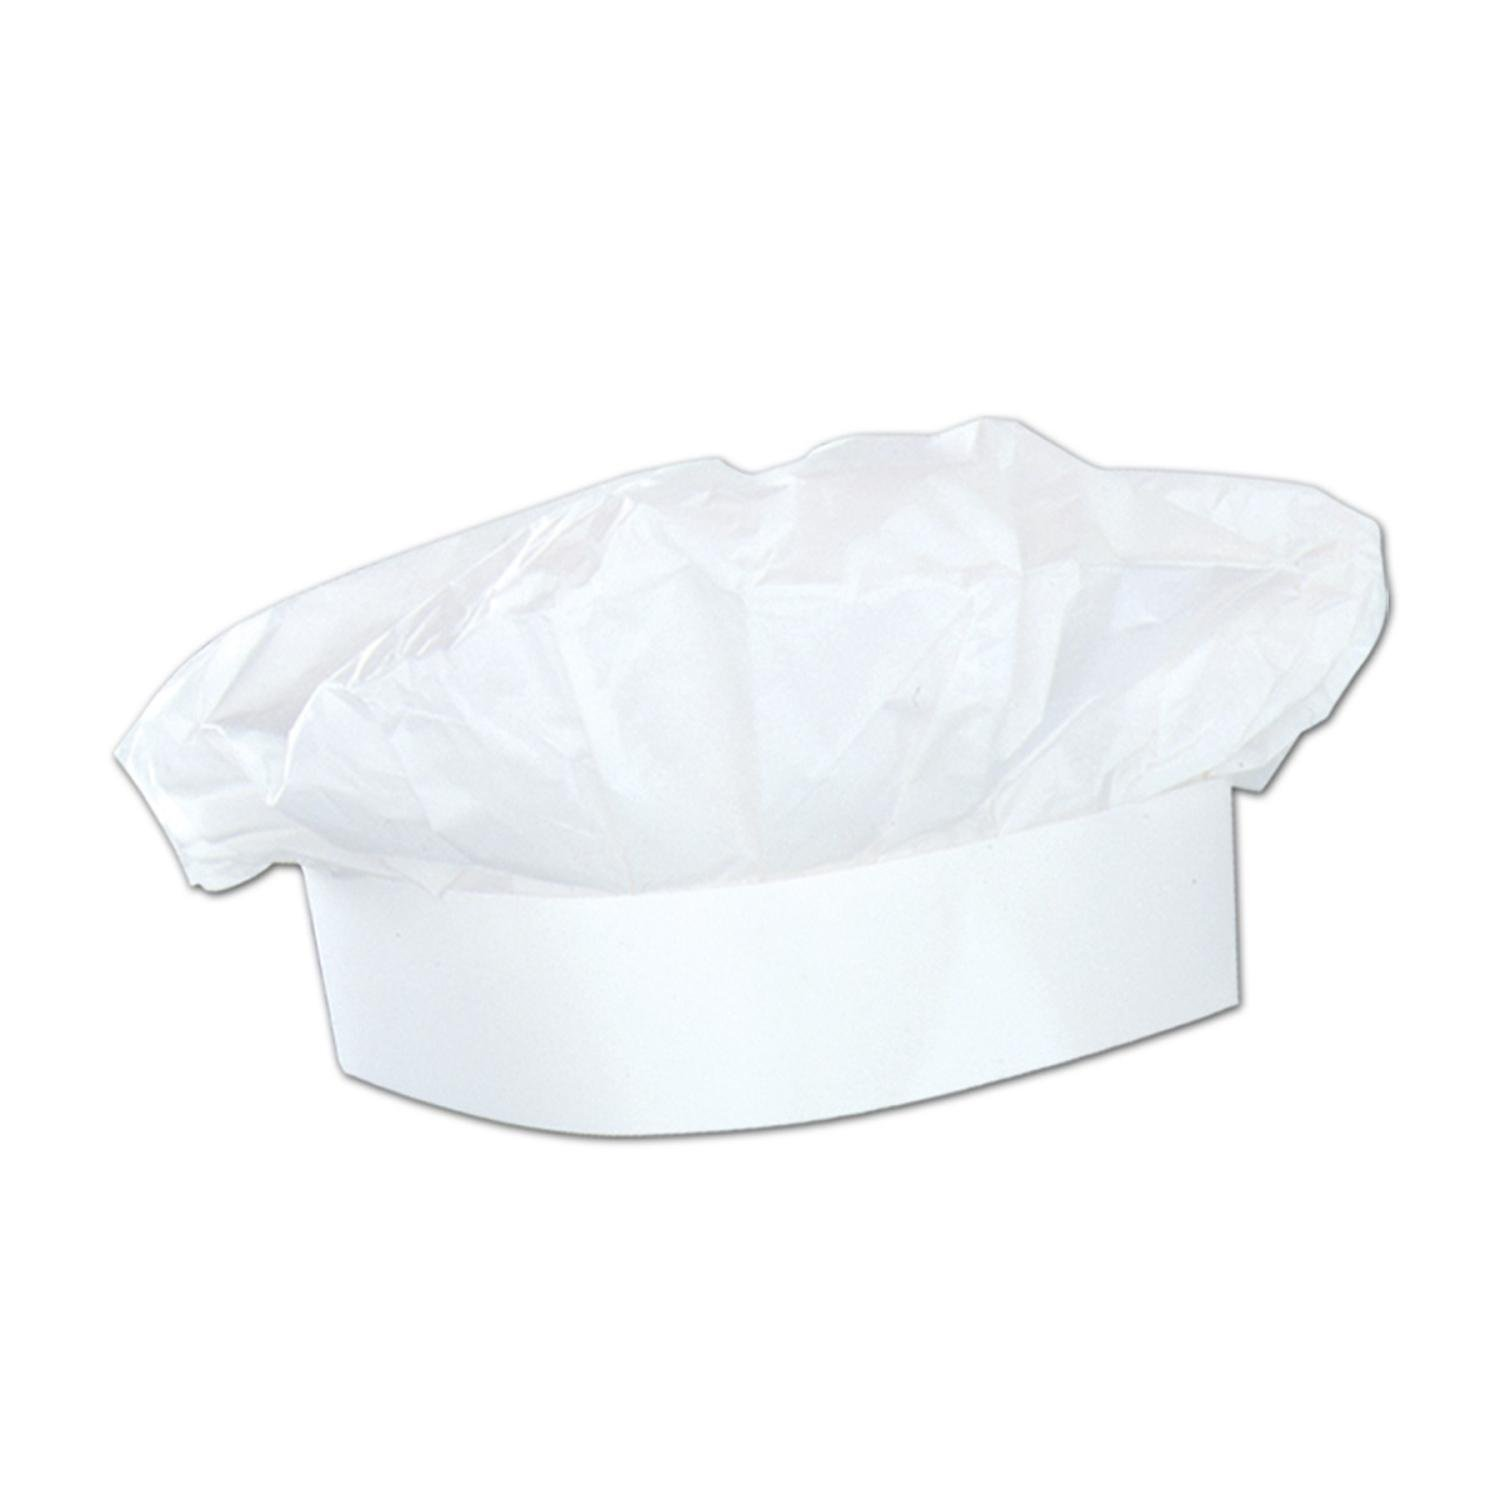 Club Pack of 48 Solid White Chef's Hat Costume Accessories